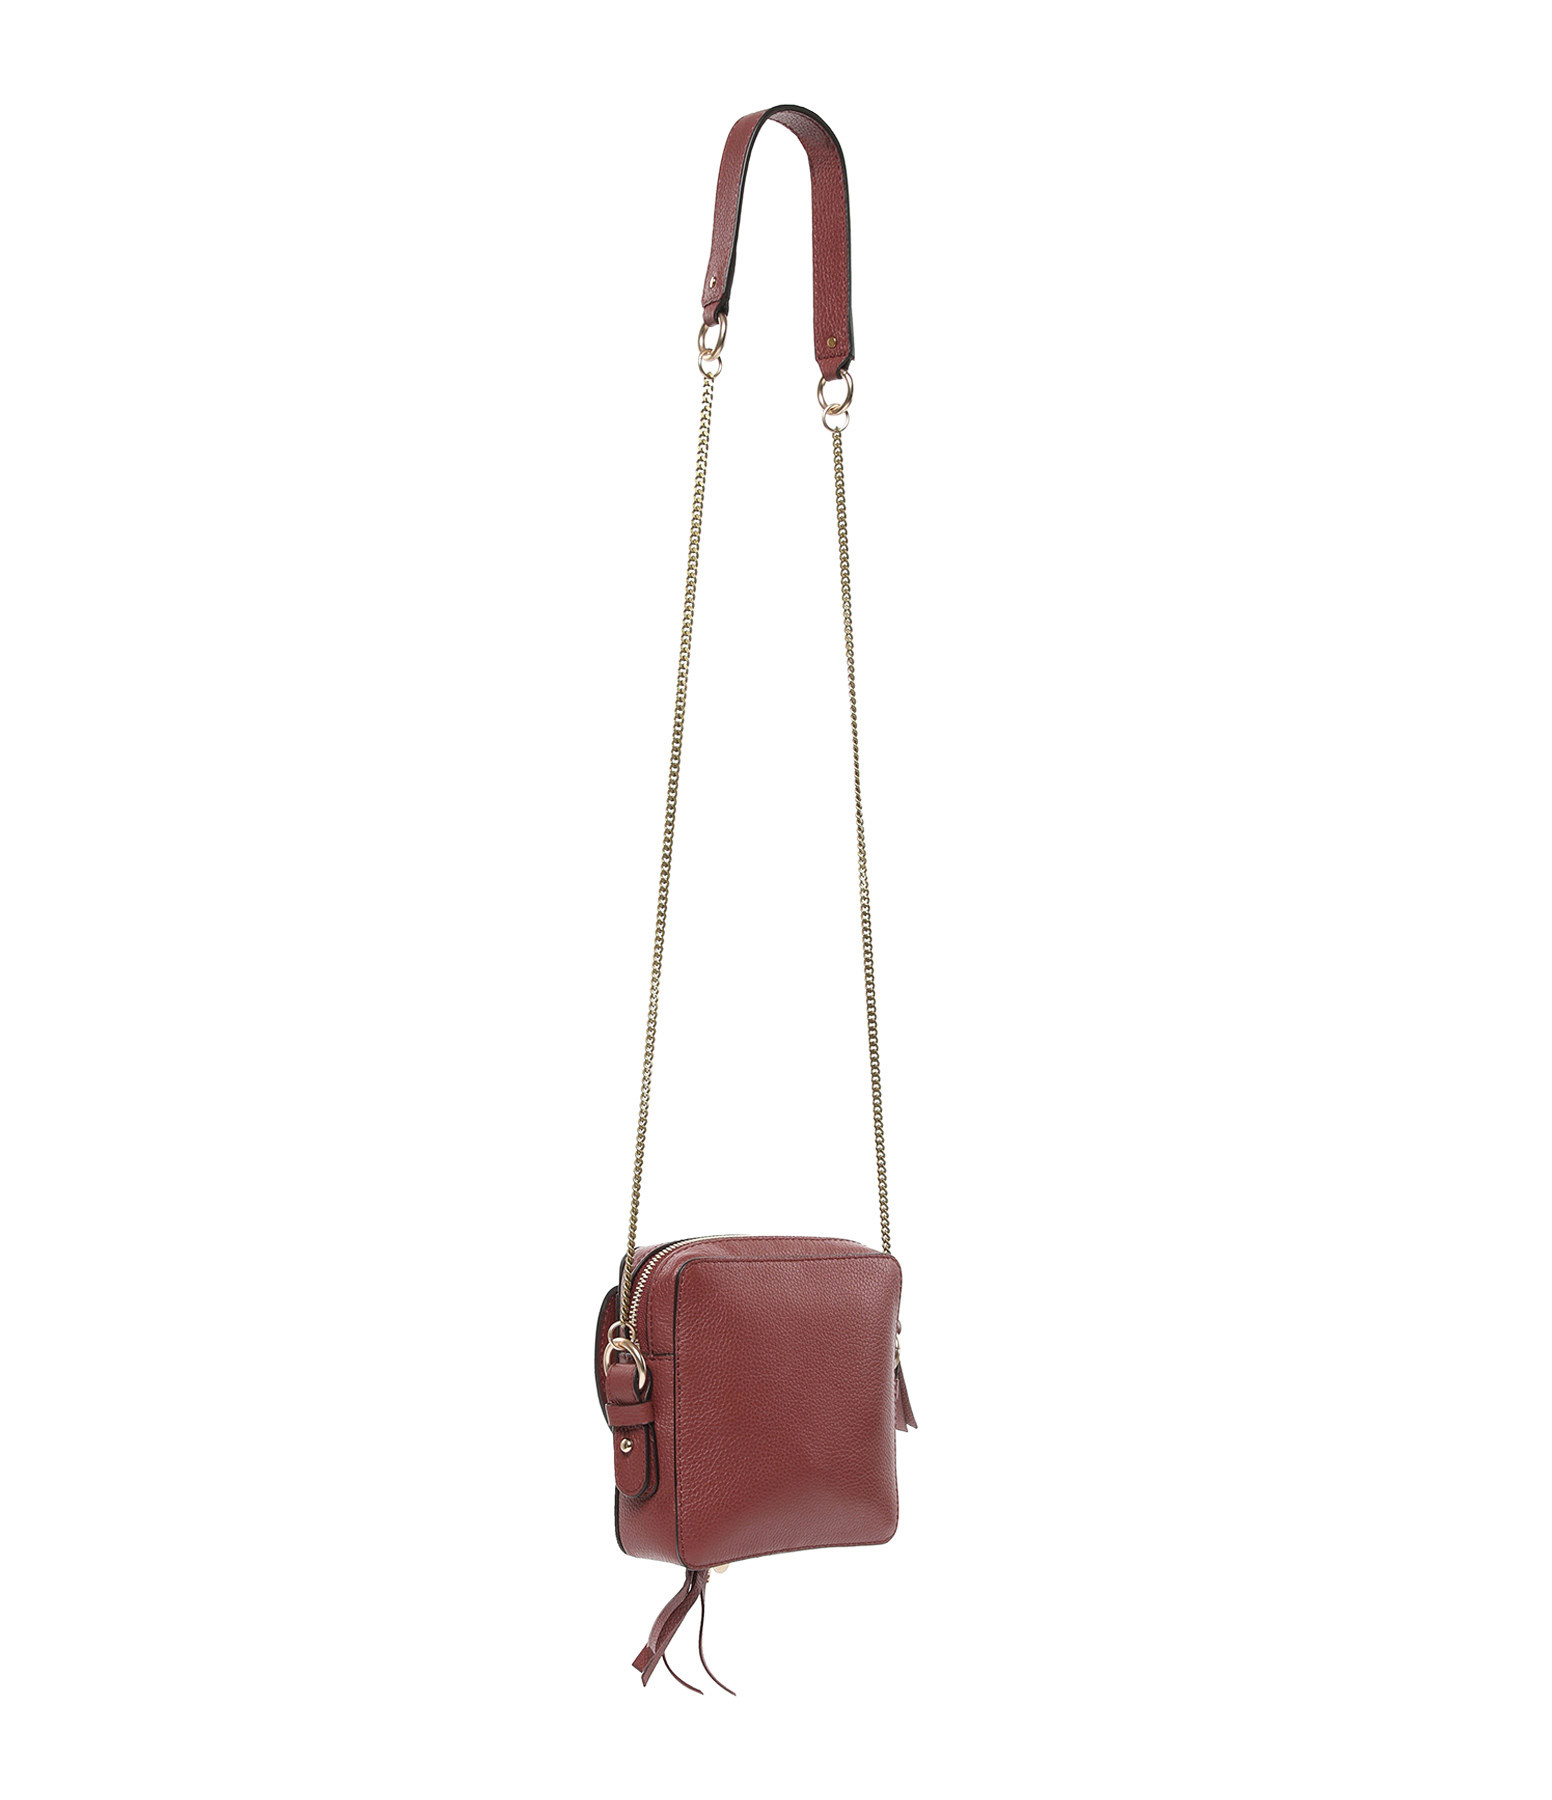 SEE BY CHLOE - Sac Joan Cuir Suédé Faded Red